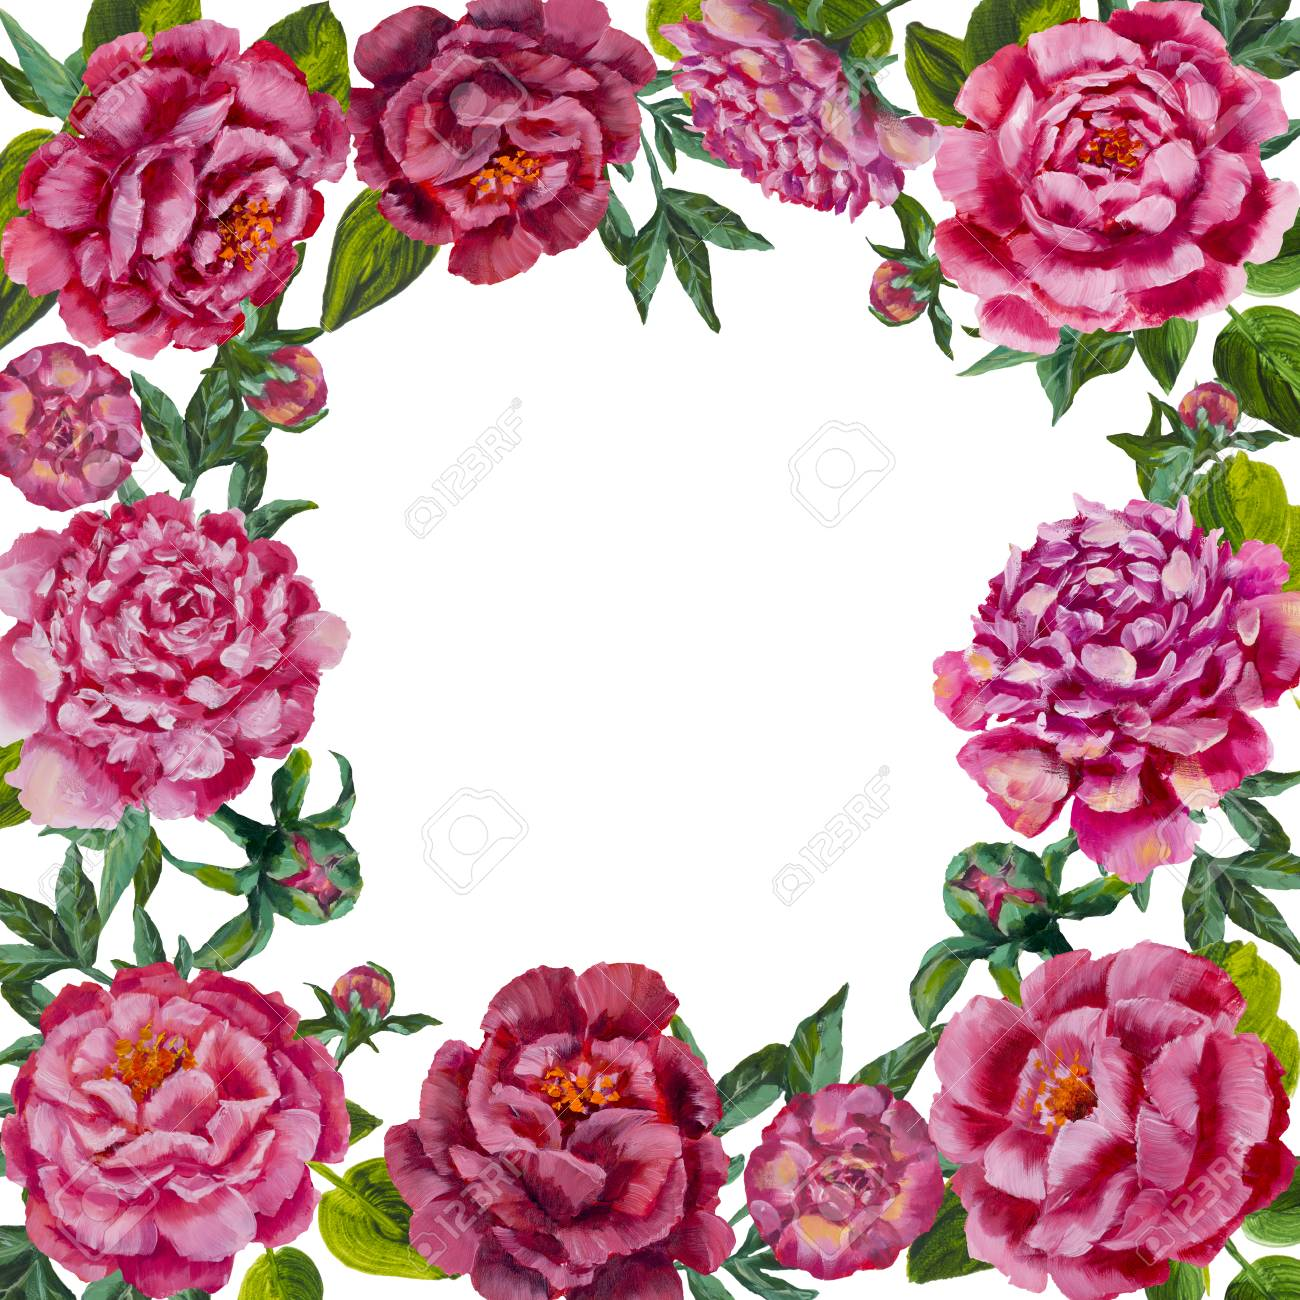 Round Oil Painting Pink Flower Peonies Roses Frame Background